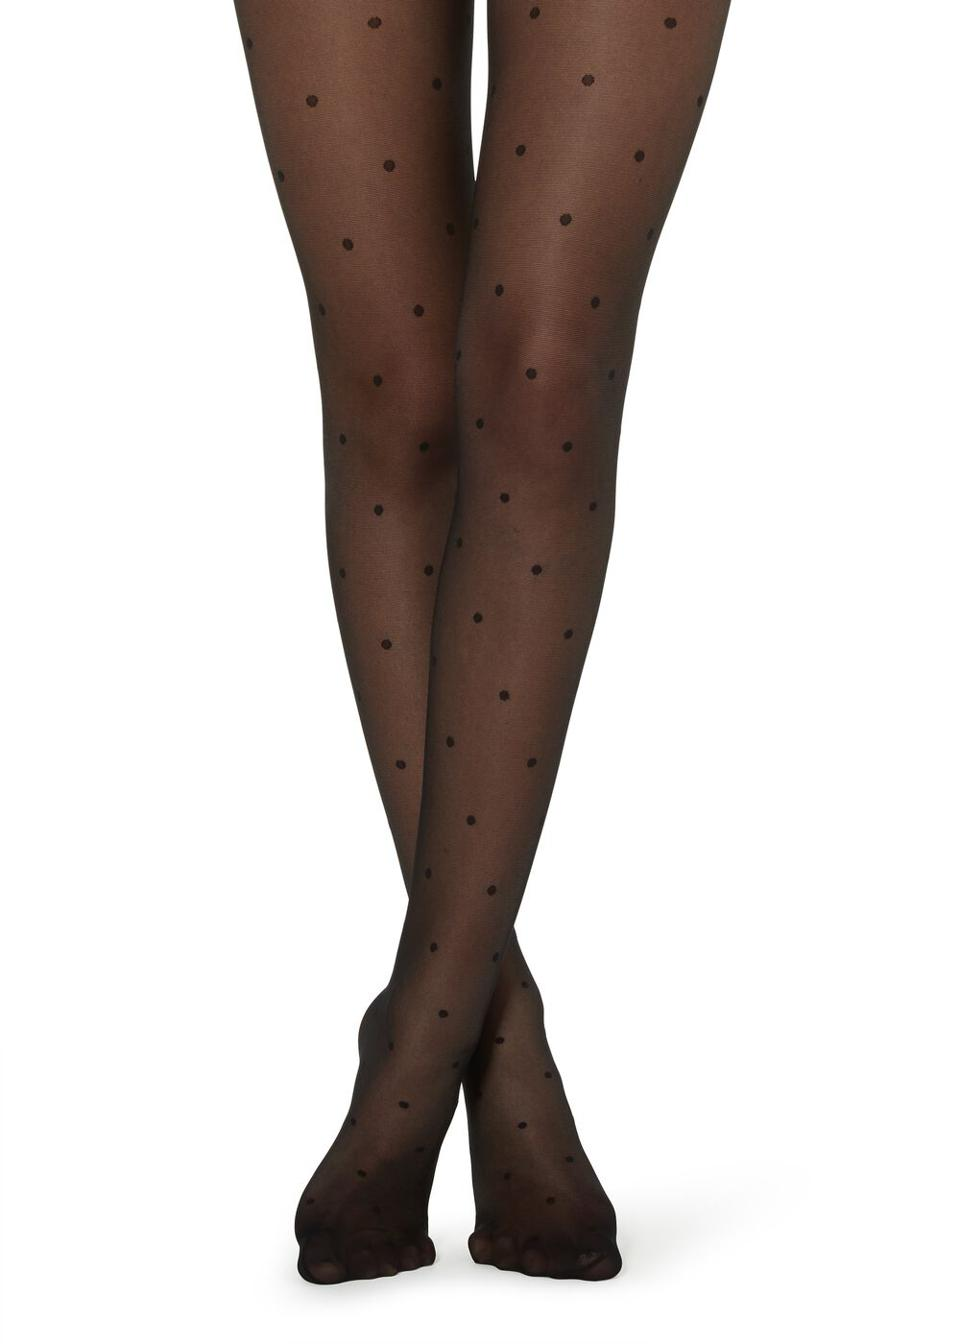 Sheer Polka-Dotted Tights by Calzedonia